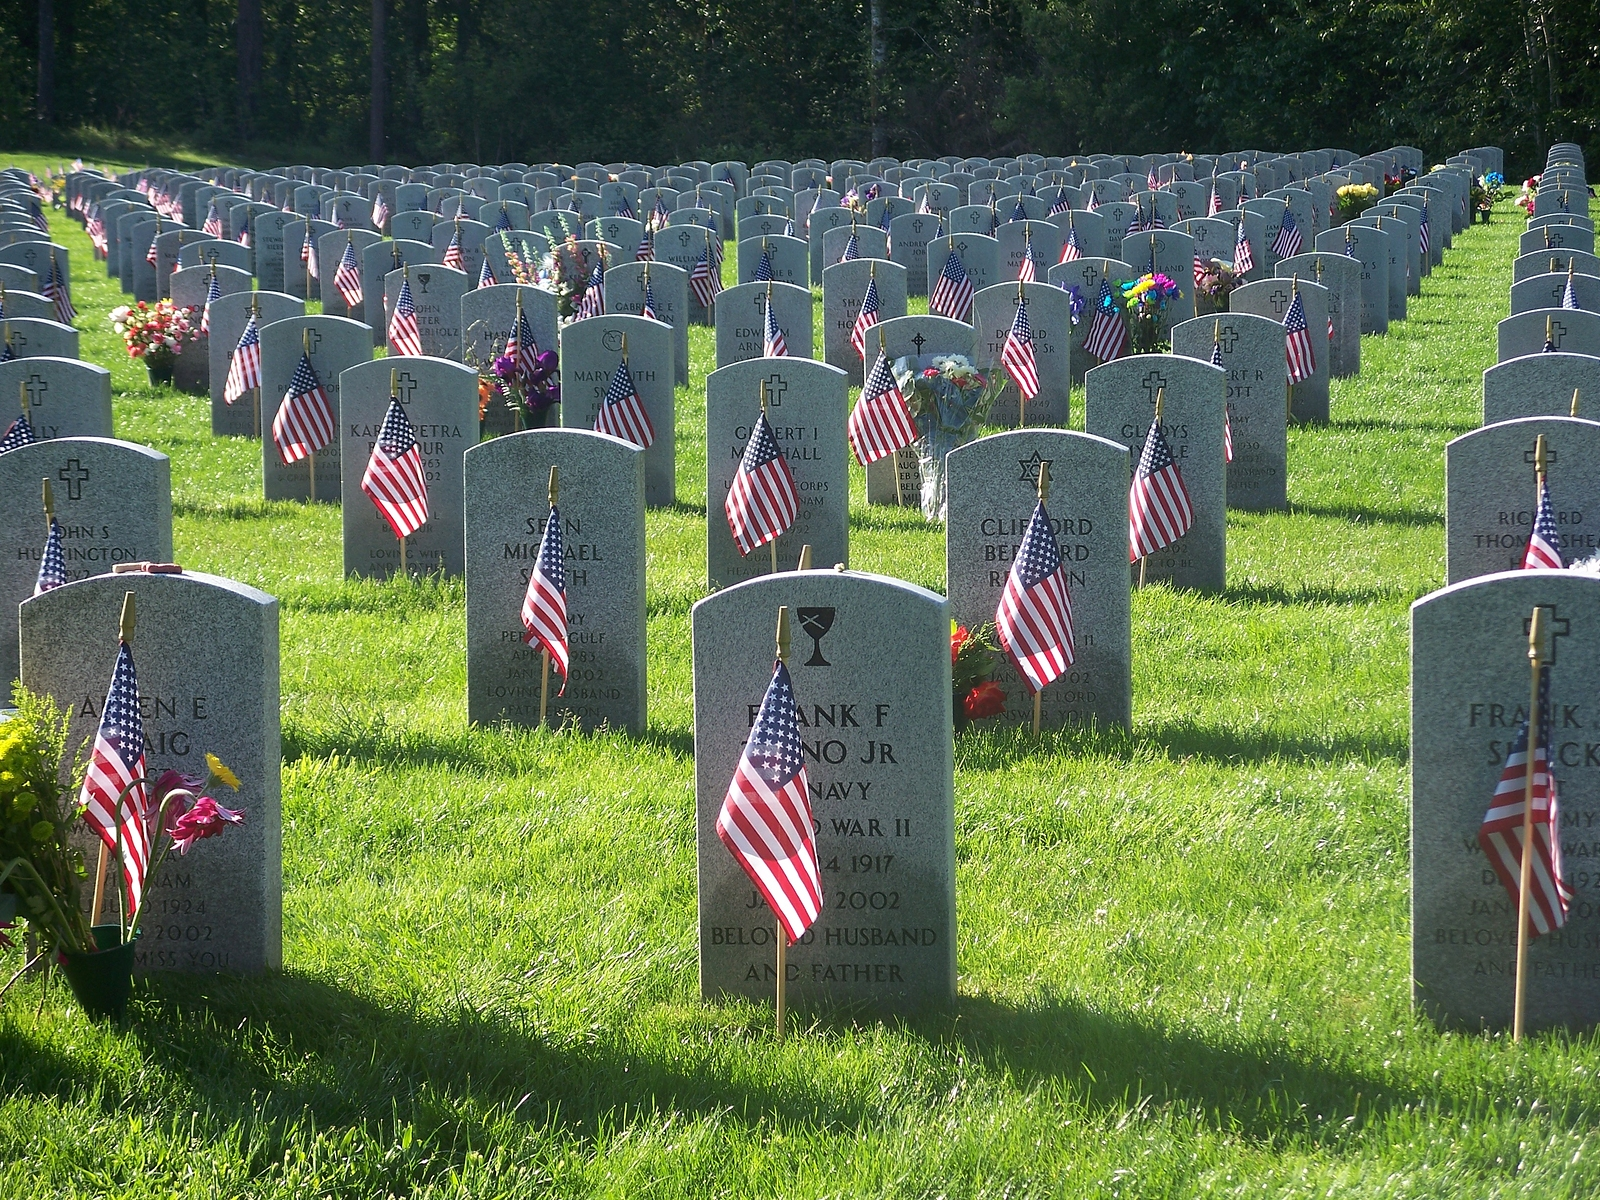 Do you know what Memorial Day really honors? Hint: It's NOT active duty/veteran military members...